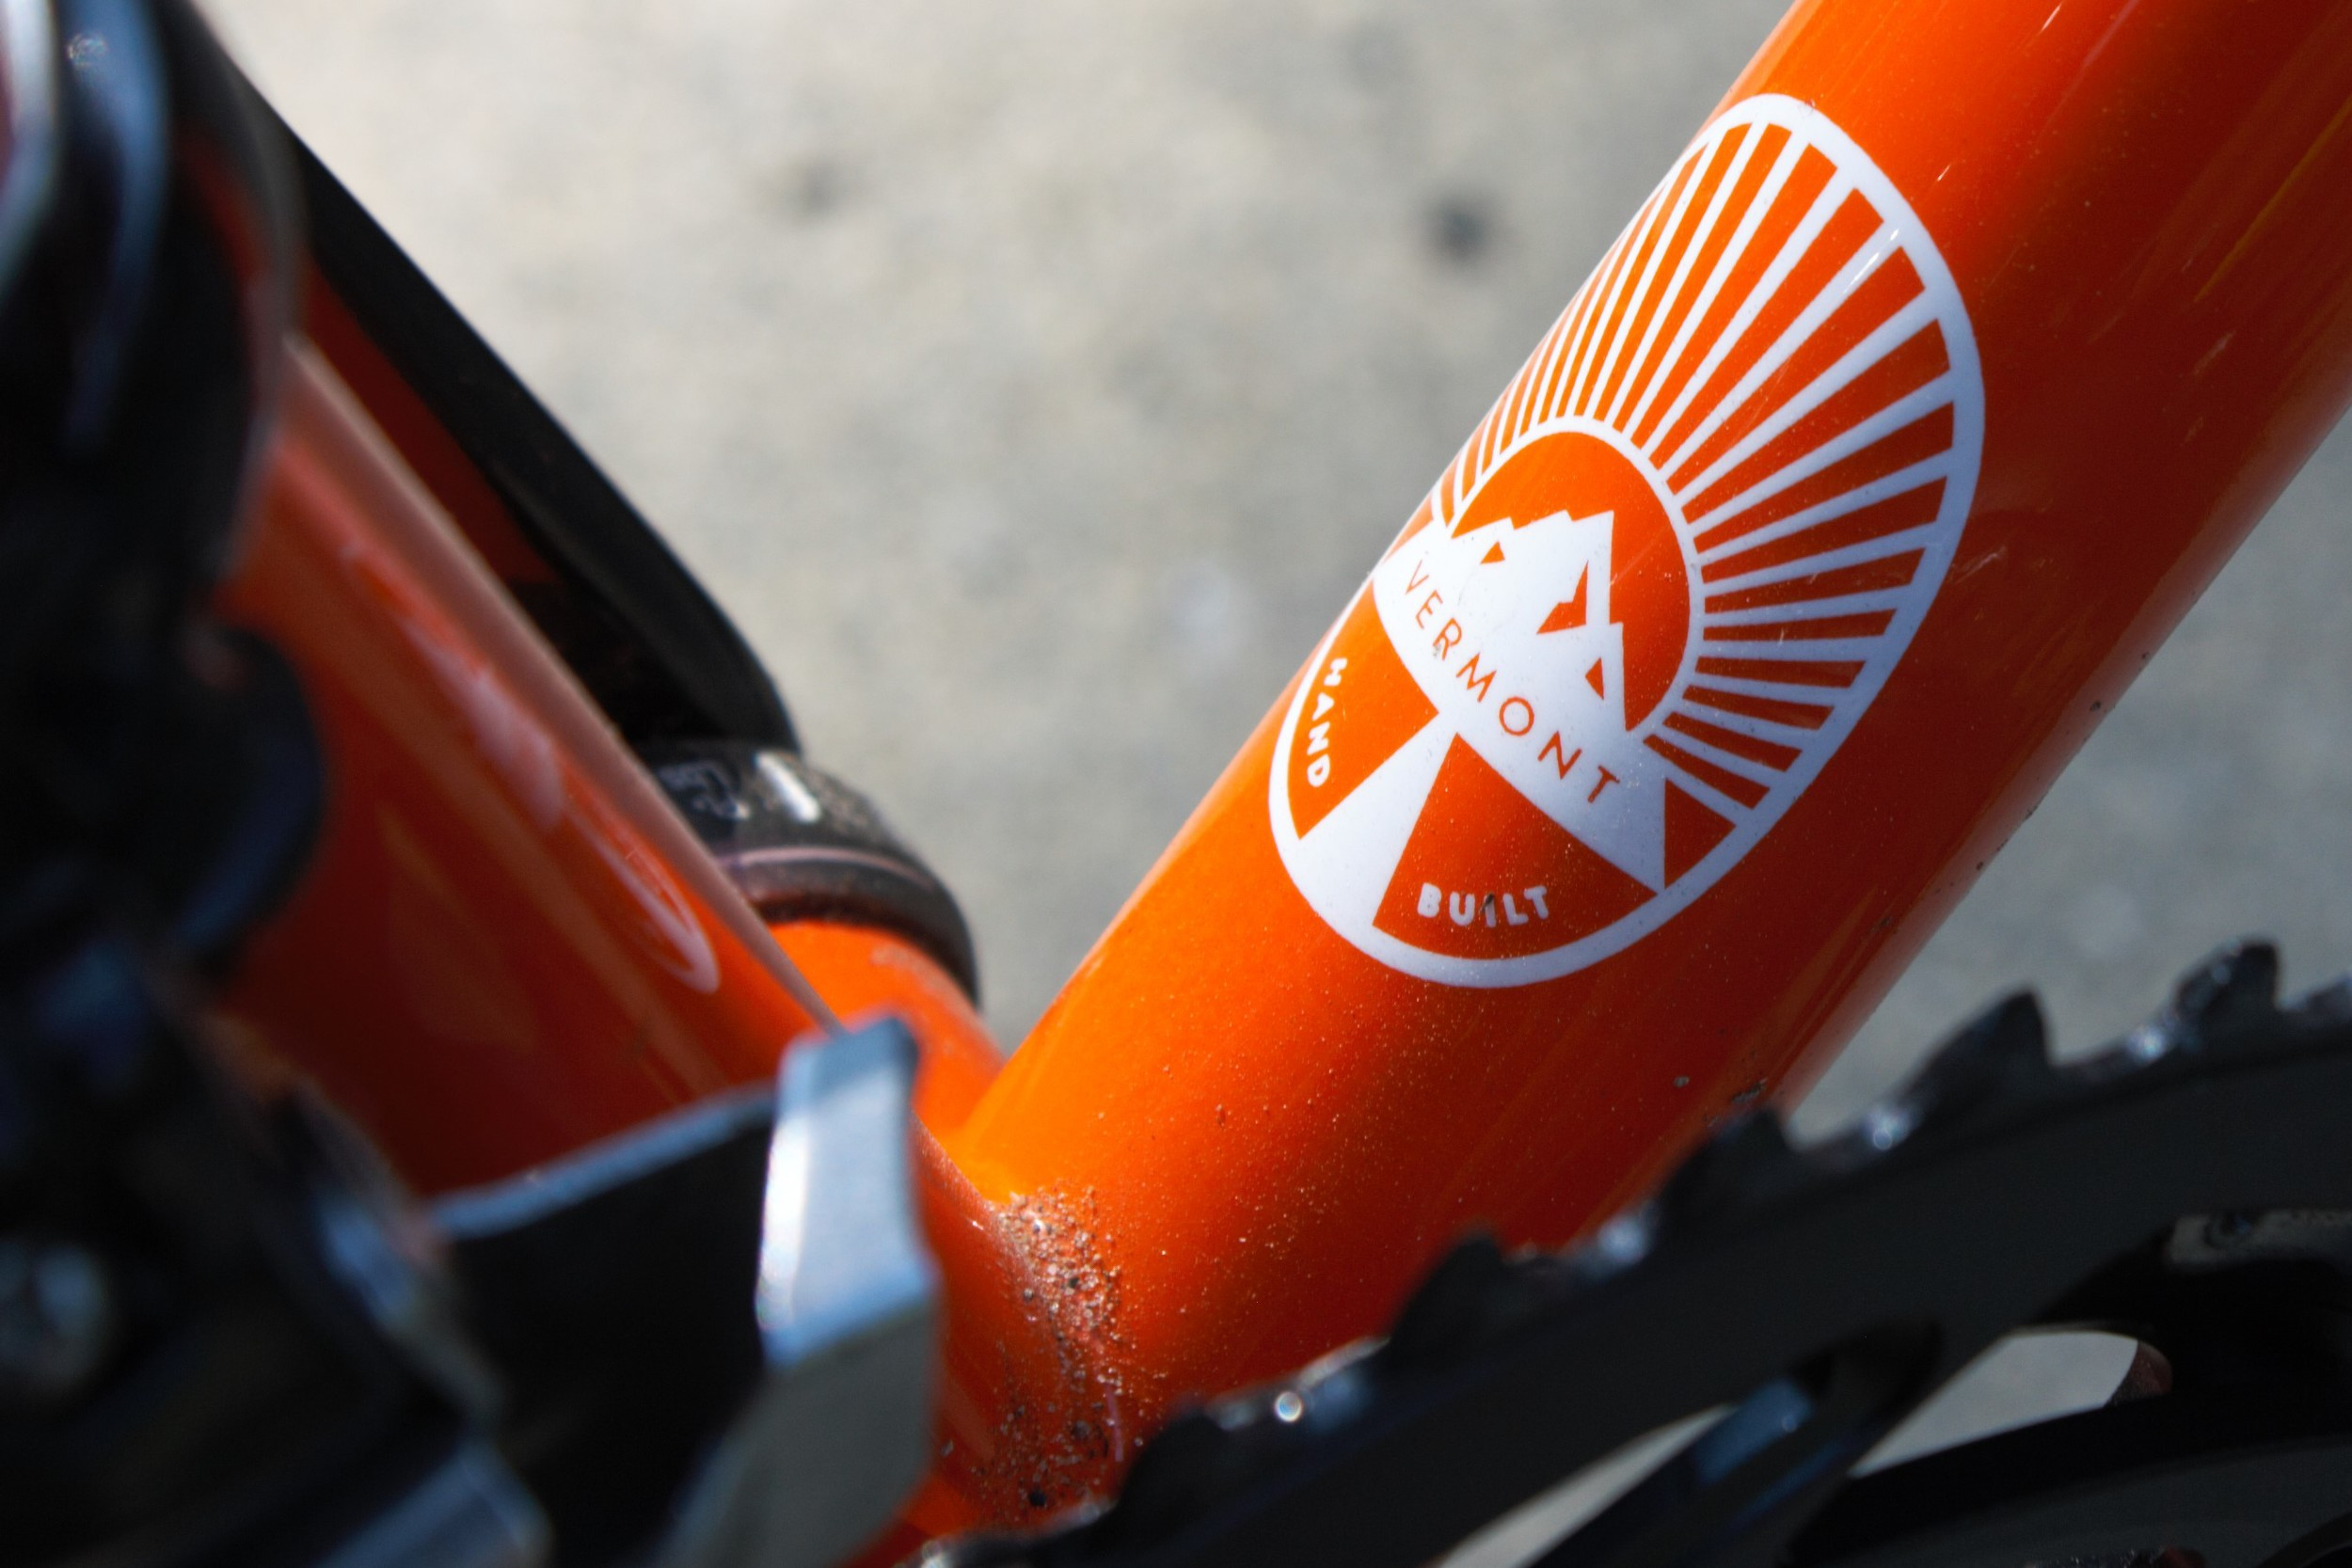 Down tube logo. Standard on all Seneca Cycle Works bicycles.